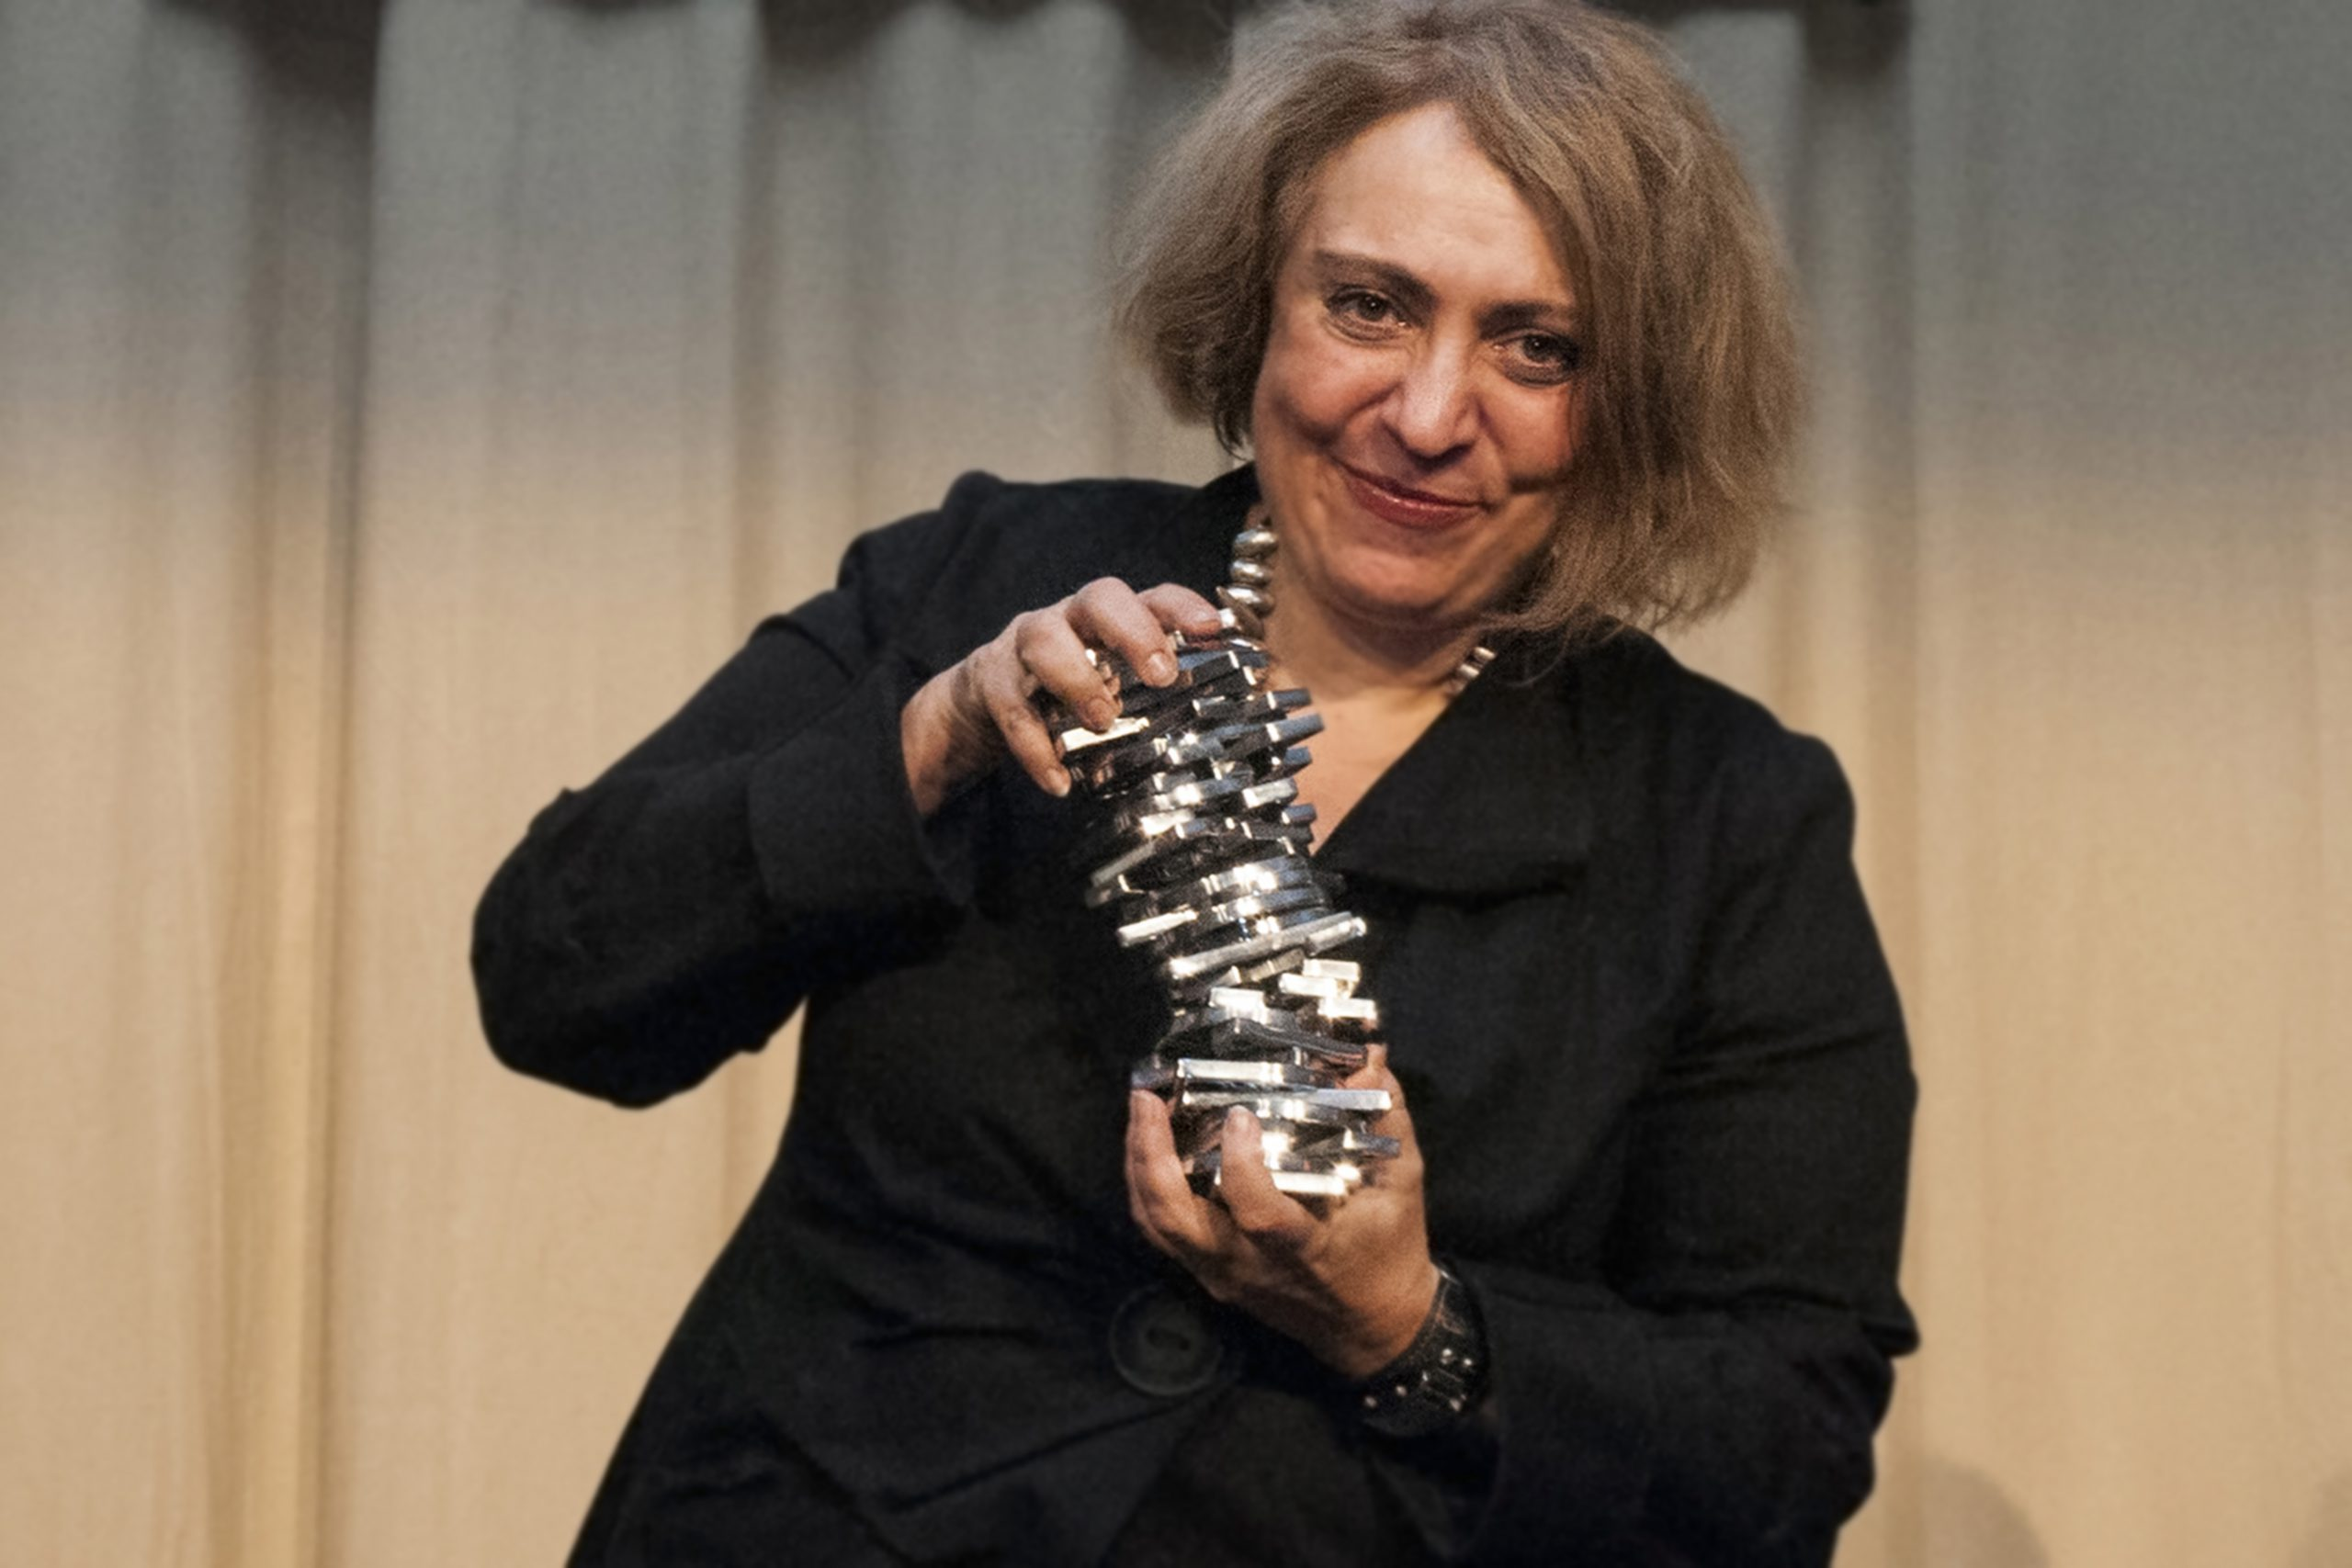 Ekaterina Degot, winner of the Igor Zabel Award for Culture and Theory 2014. Photo: Barbara Zeidler